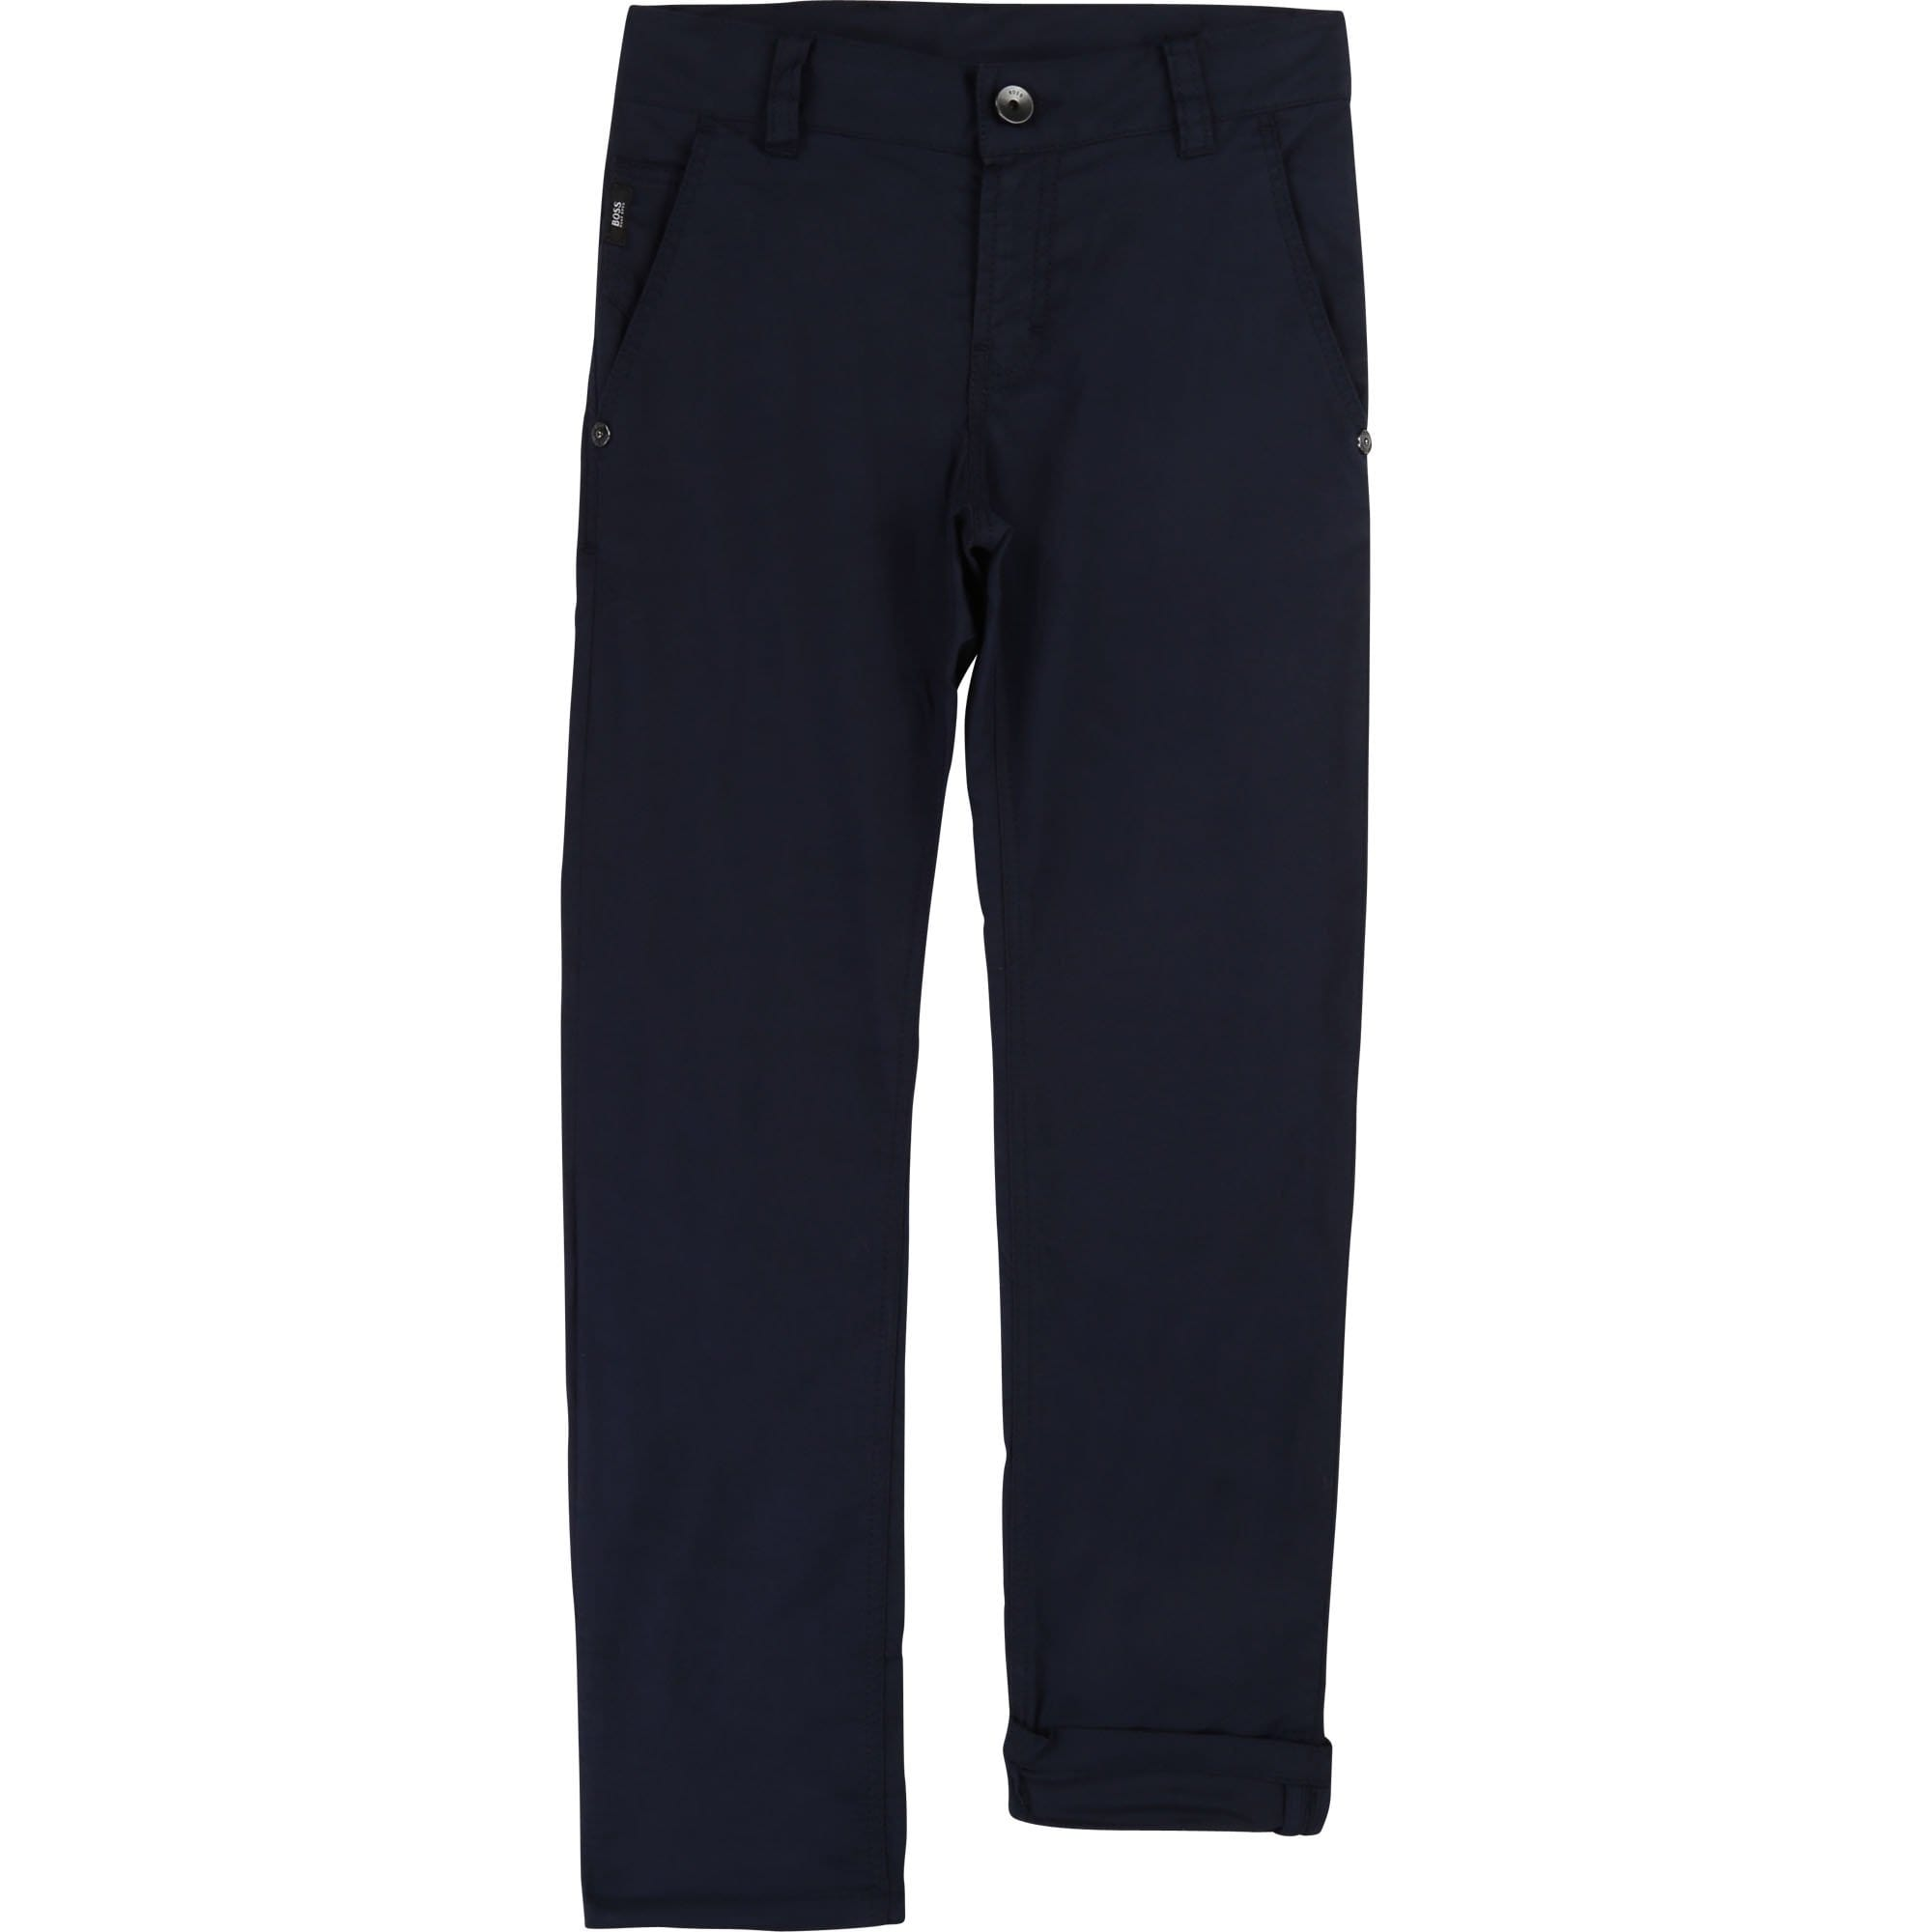 Hugo Boss Chino Pants Navy (4703938150531)